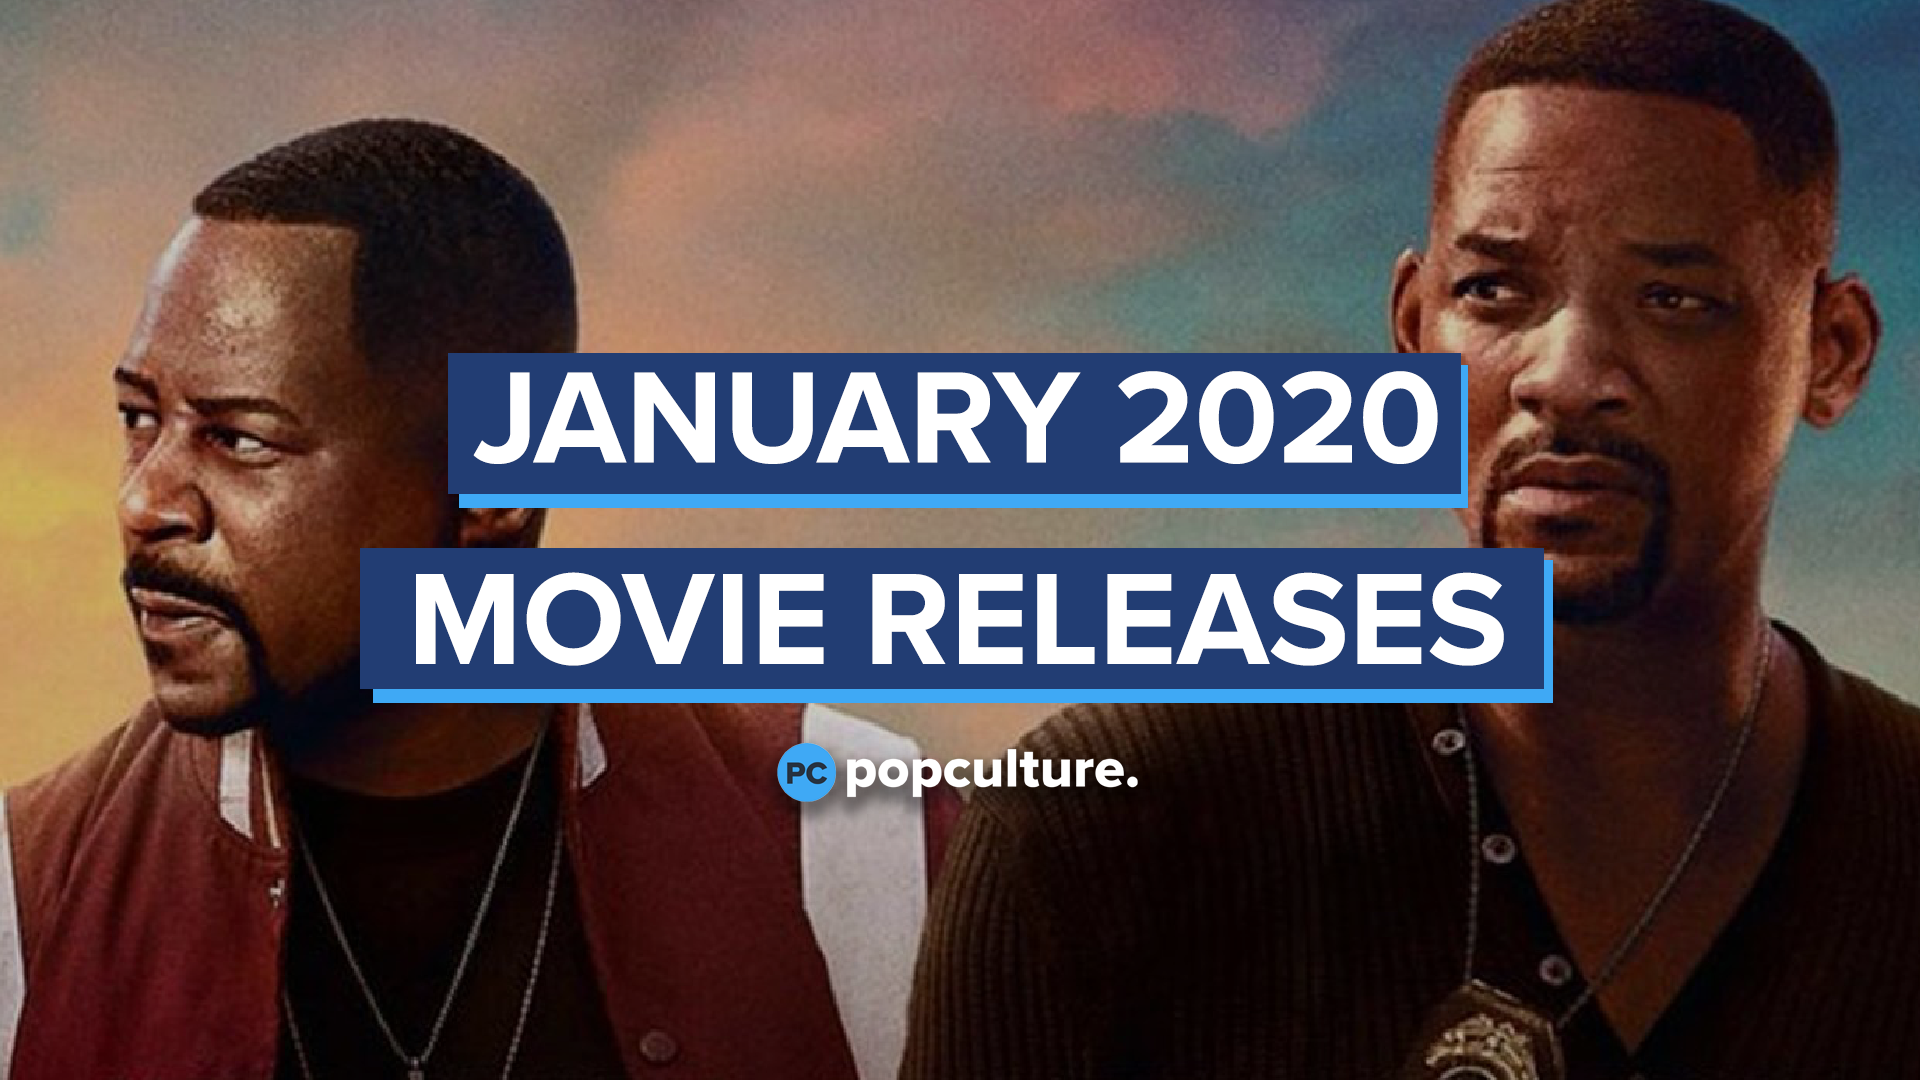 Movies Coming to Theaters in January 2020 - PopCulture.com screen capture